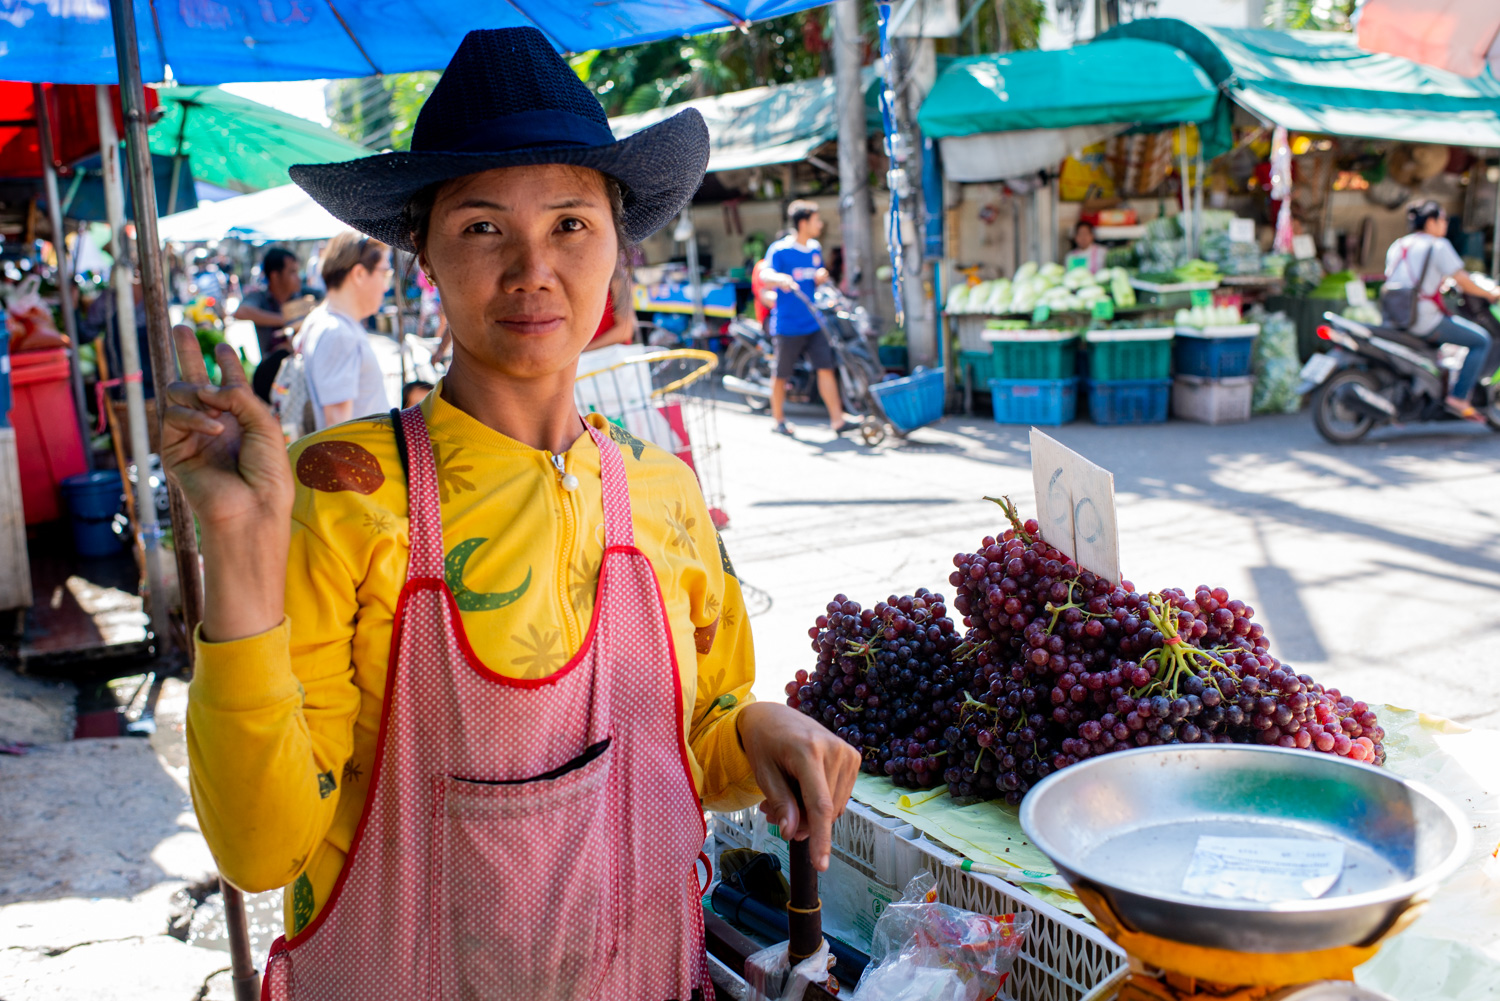 Fruit vendor at a market in Chiang Mai, Thailand